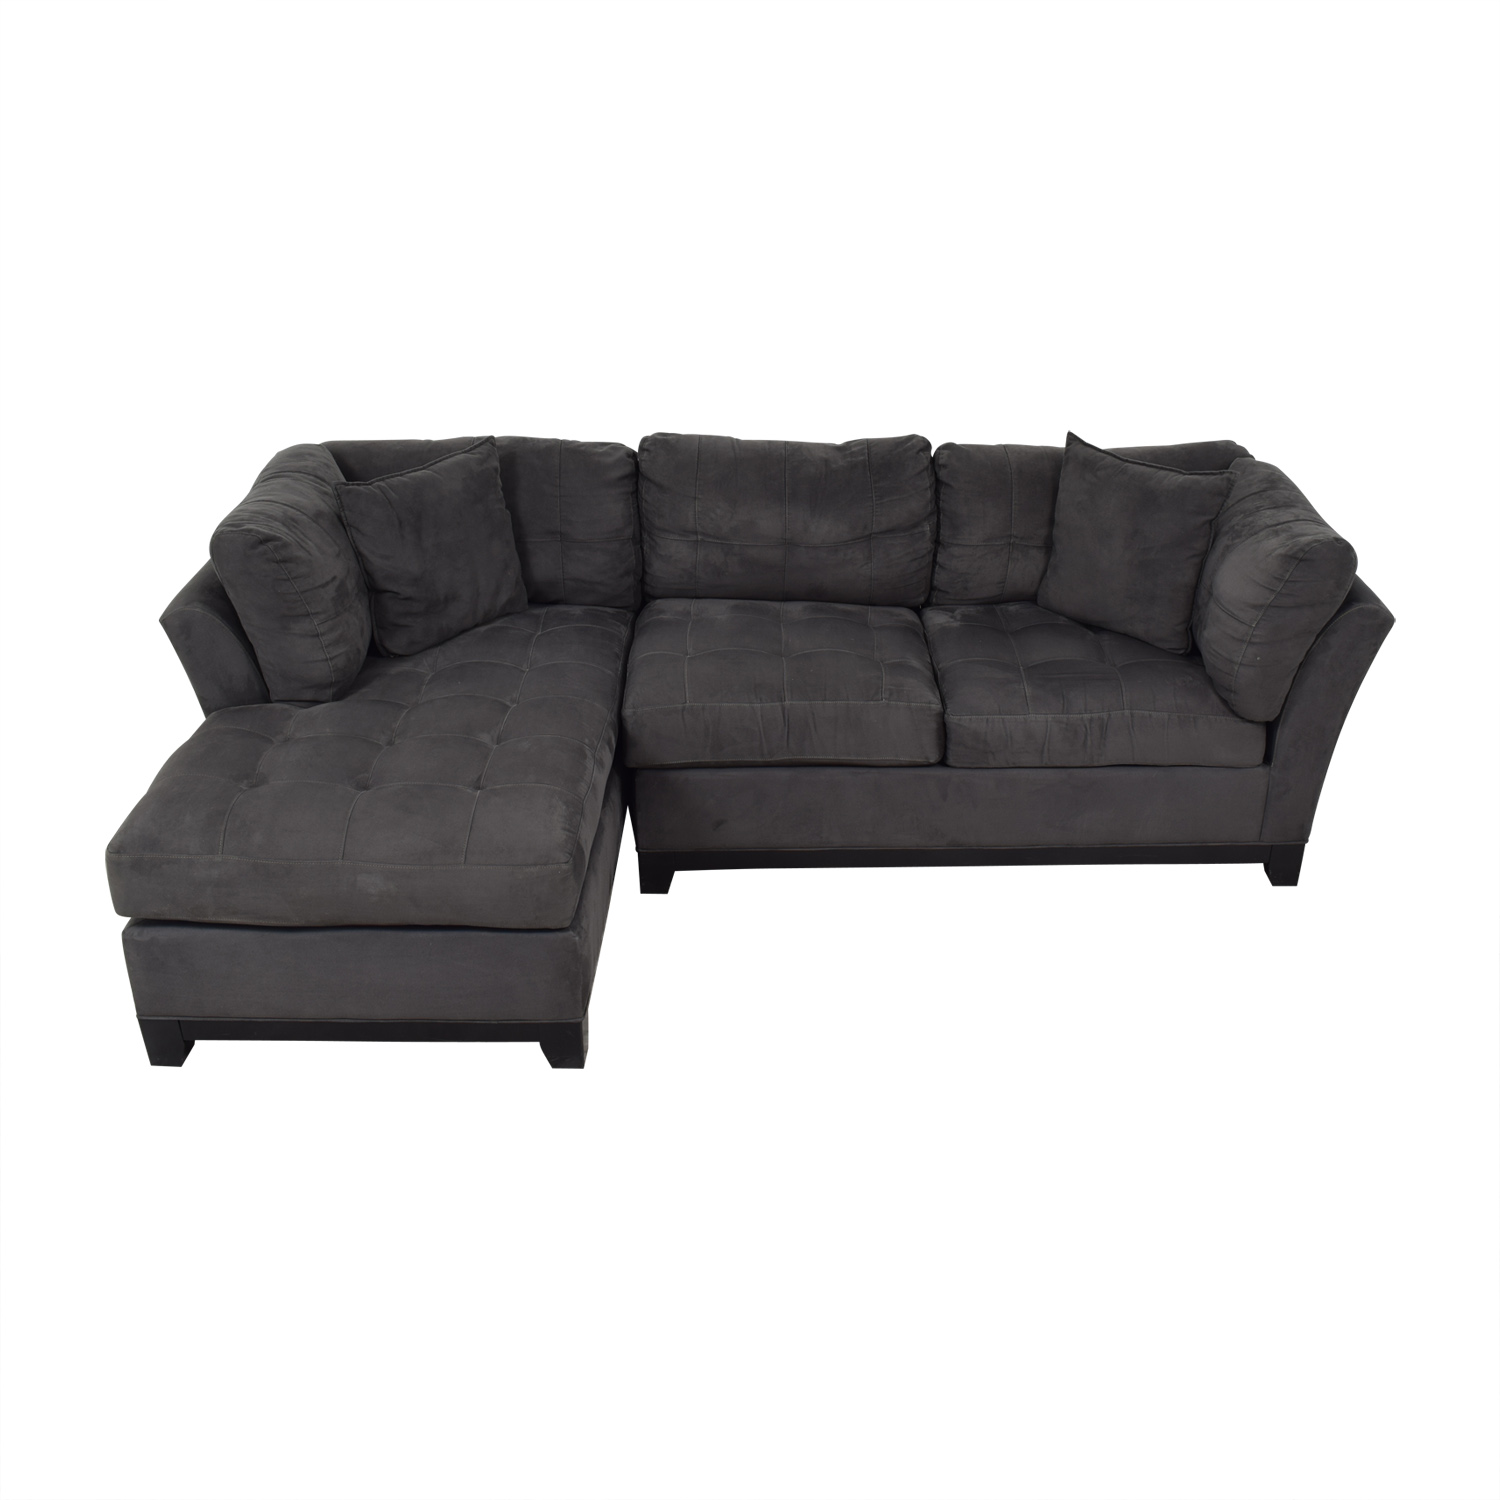 Cindy Crawford Home Metropolis Grey Microfiber Chaise Sectional Cindy Crawford Home